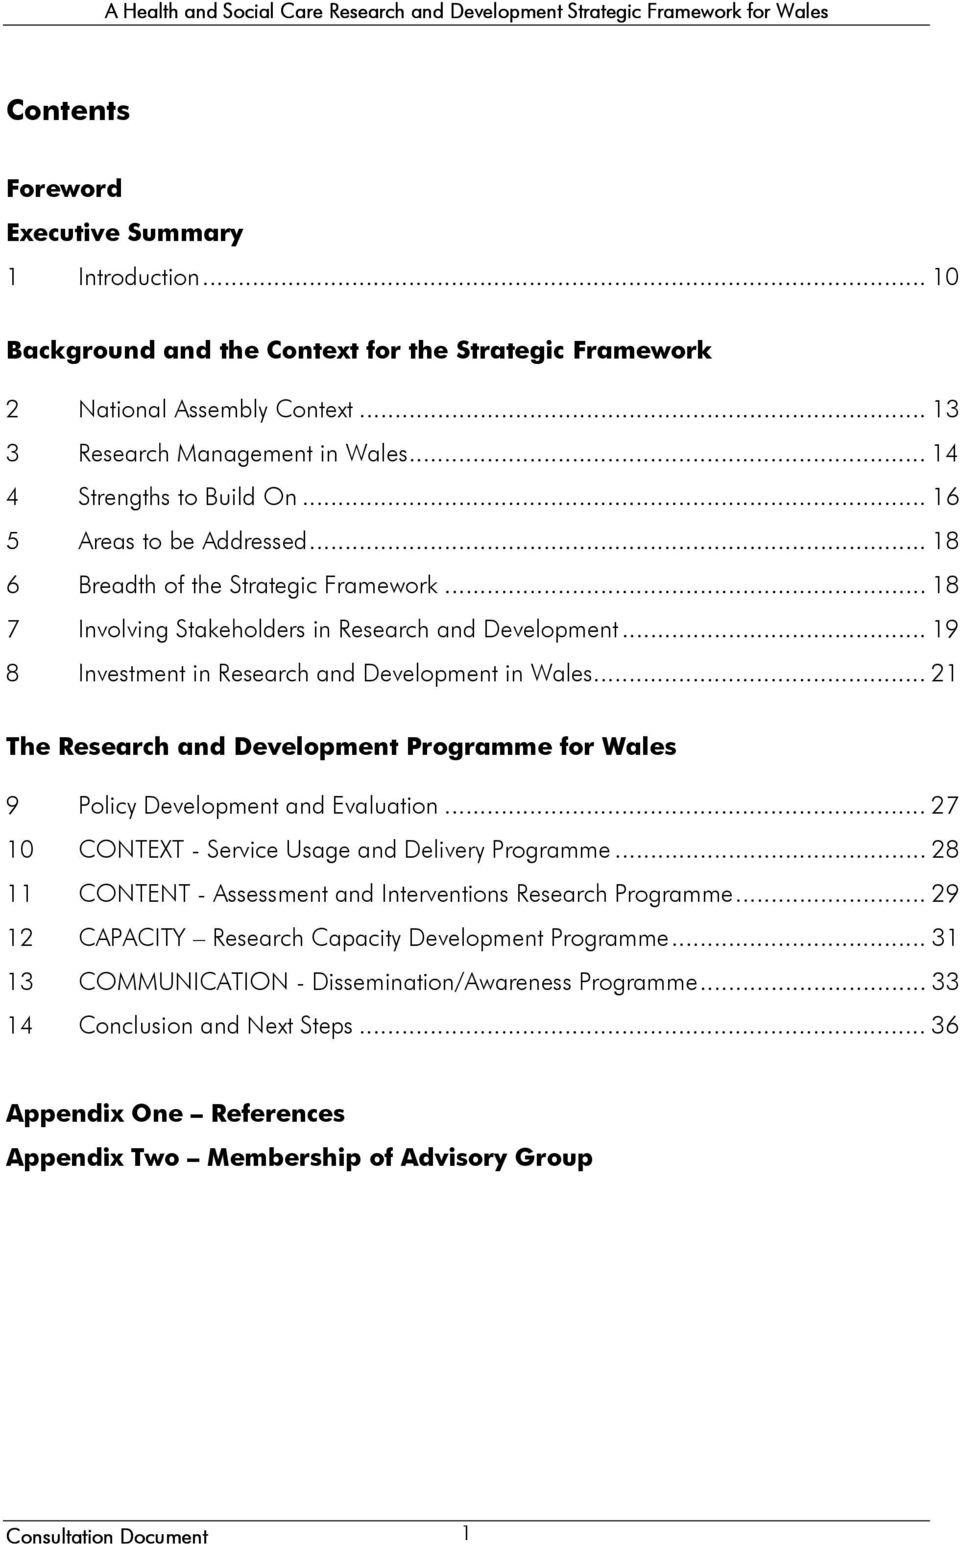 .. 19 8 Investment in Research and Development in Wales... 21 The Research and Development Programme for Wales 9 Policy Development and Evaluation.